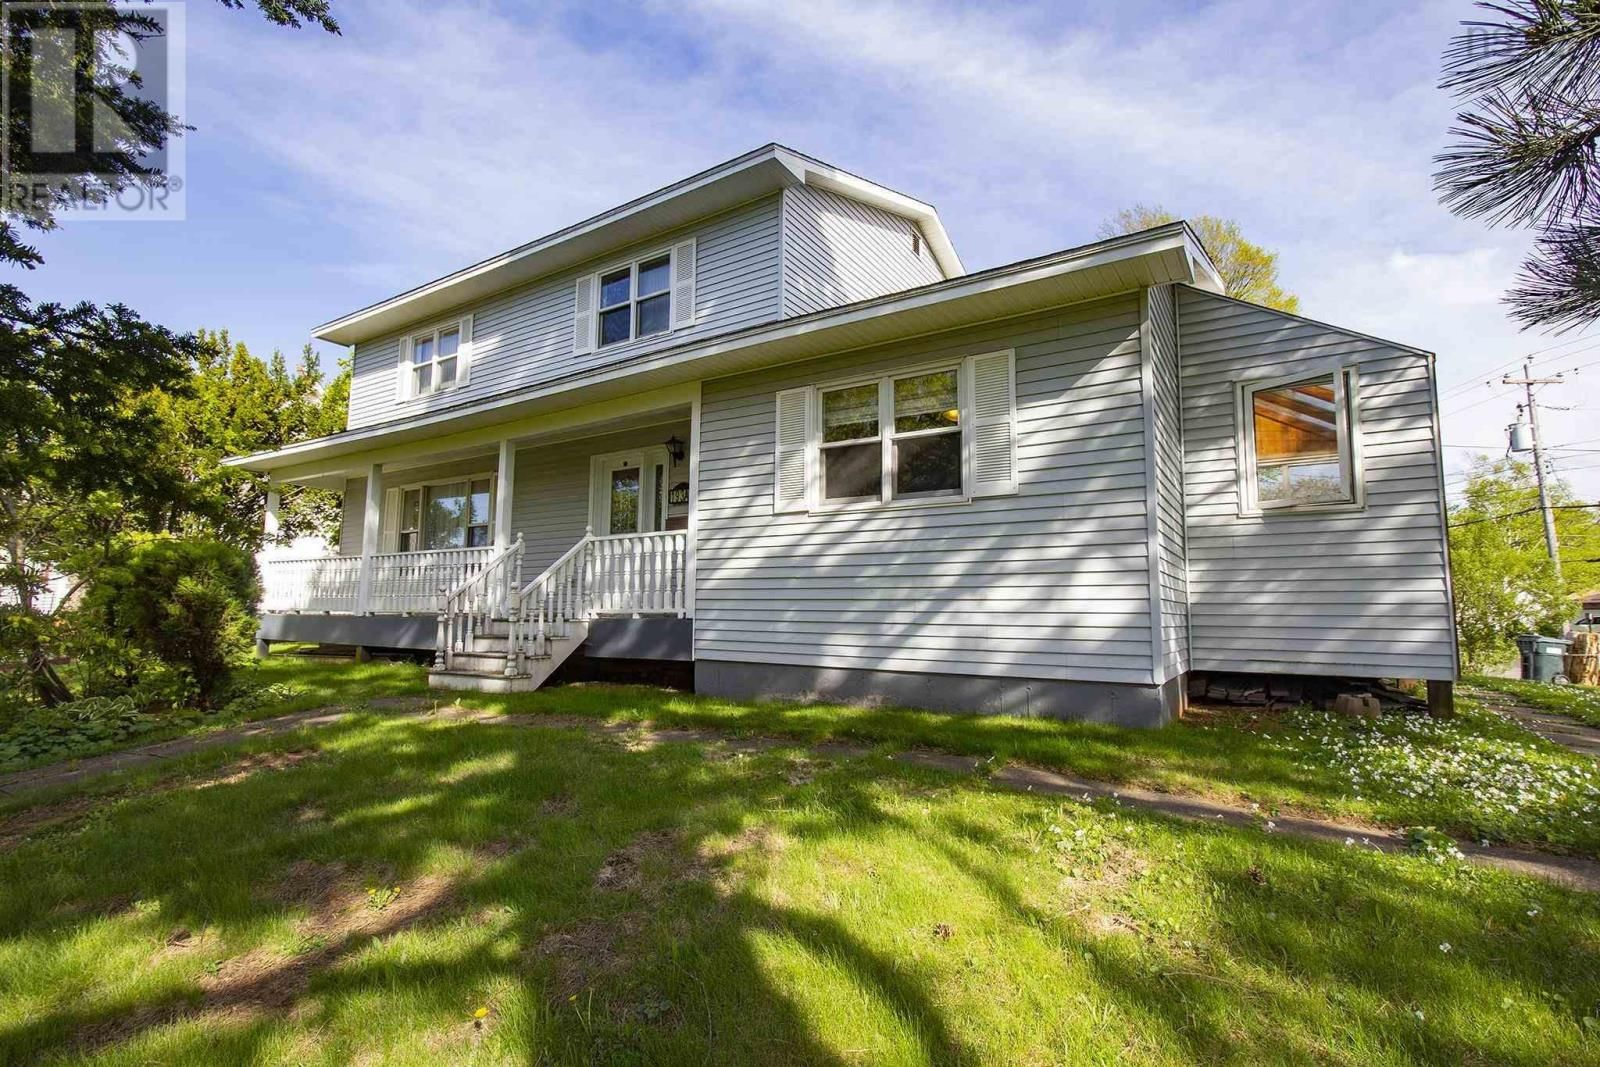 Main Photo: 193A Victoria Street E in Amherst: House for sale : MLS®# 202122968